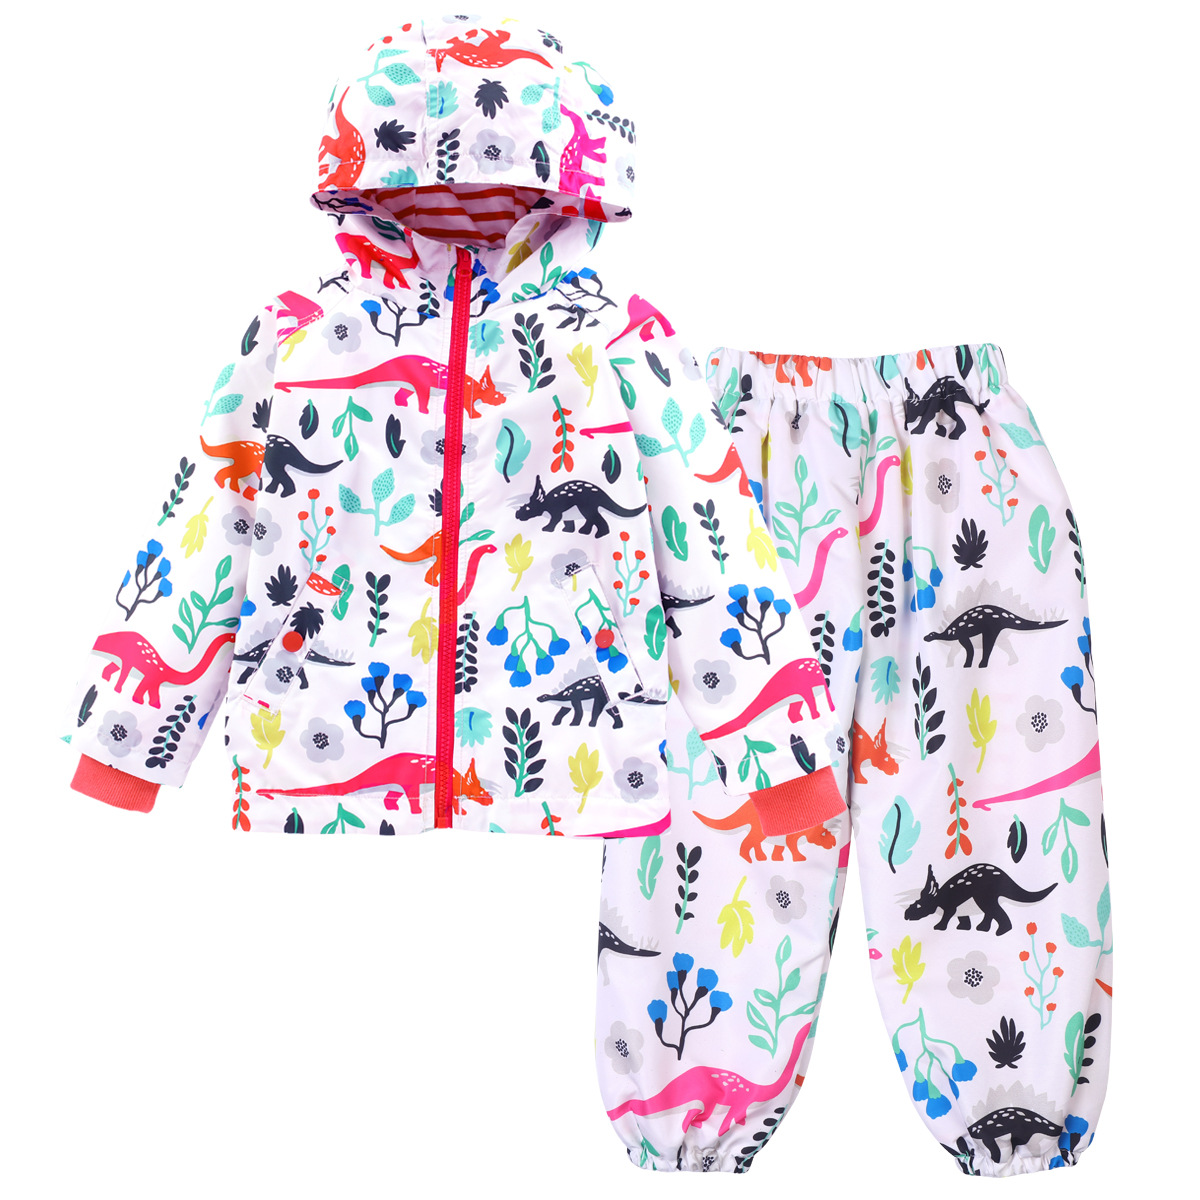 Kids Cartoon Clothes Suits Dinosaur Hooded Jacket + Casual Pants Two Pieces Boys Girls Sets Spring Autumn Rain Coat Tracksuits benkia motorcycle rain coat hooded raincoat two piece raincoat suit riding rain gear motorcycle bicycle rain jacket and pants